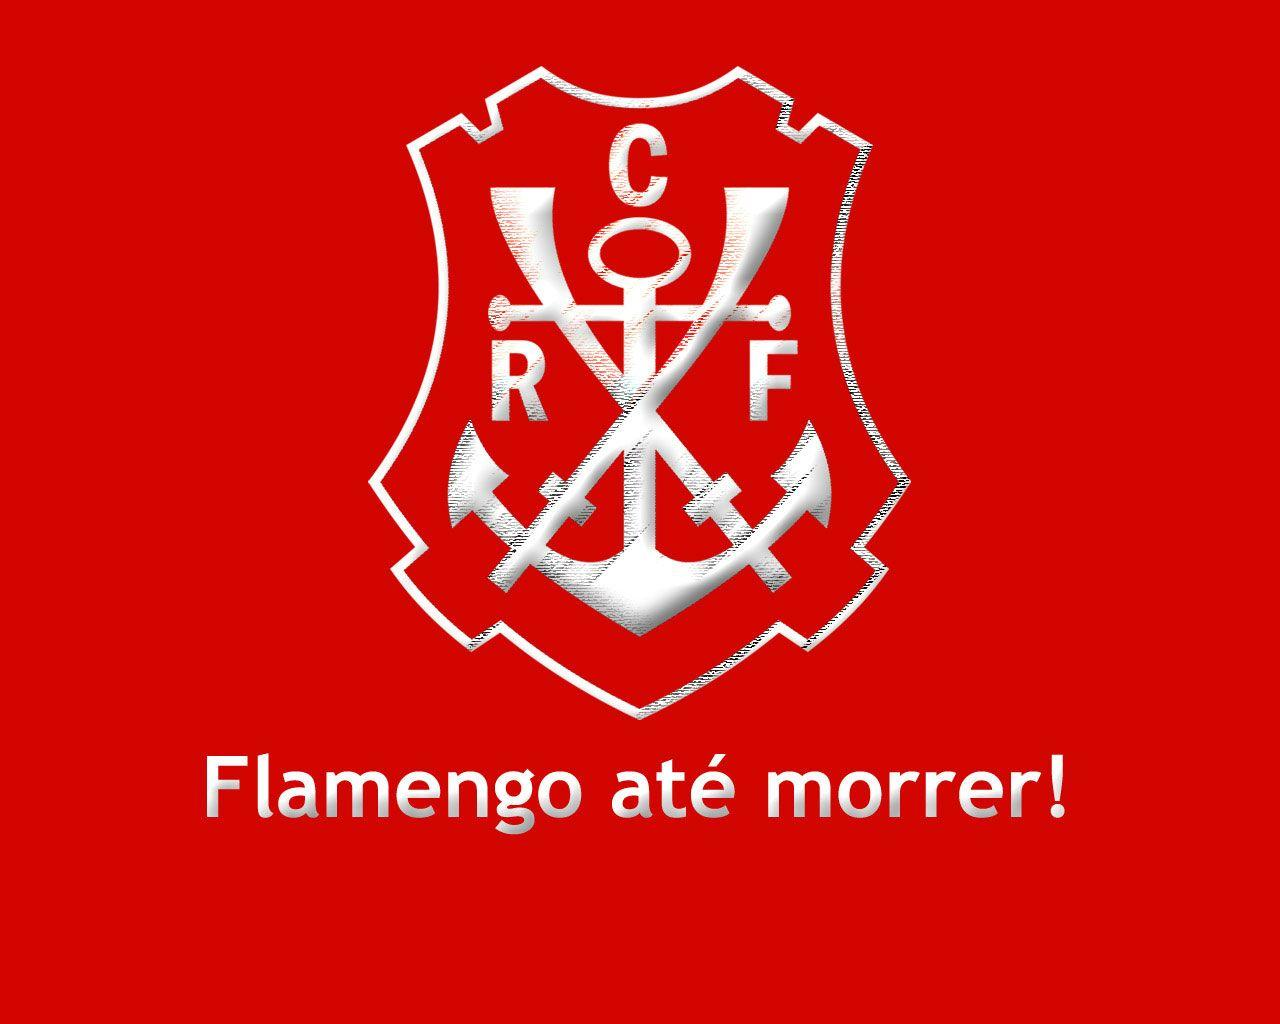 Fla Tocantins: Wallpapers Flamengo